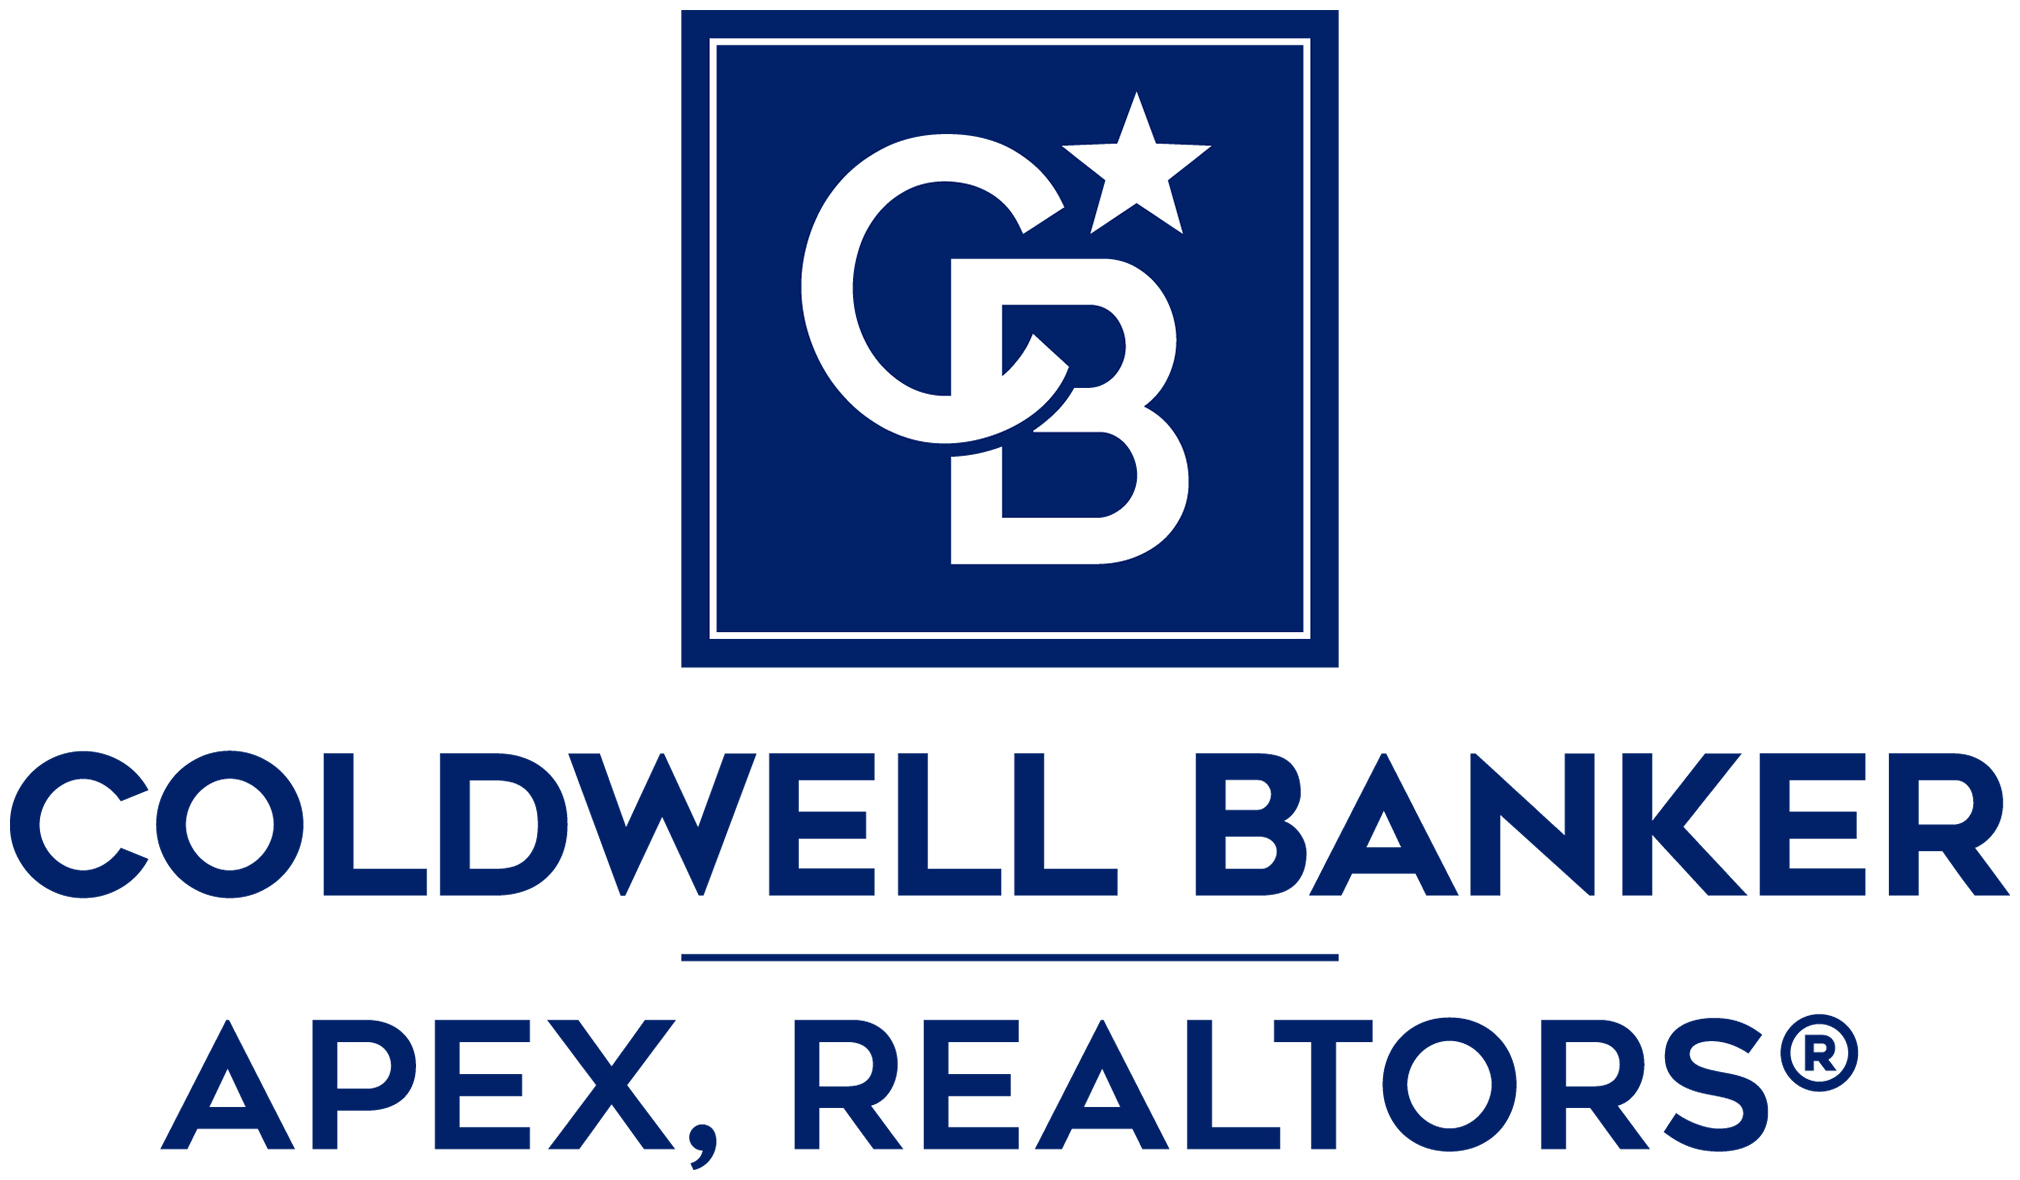 Dallas Fort Worth - Coldwell Banker Apex Realtors